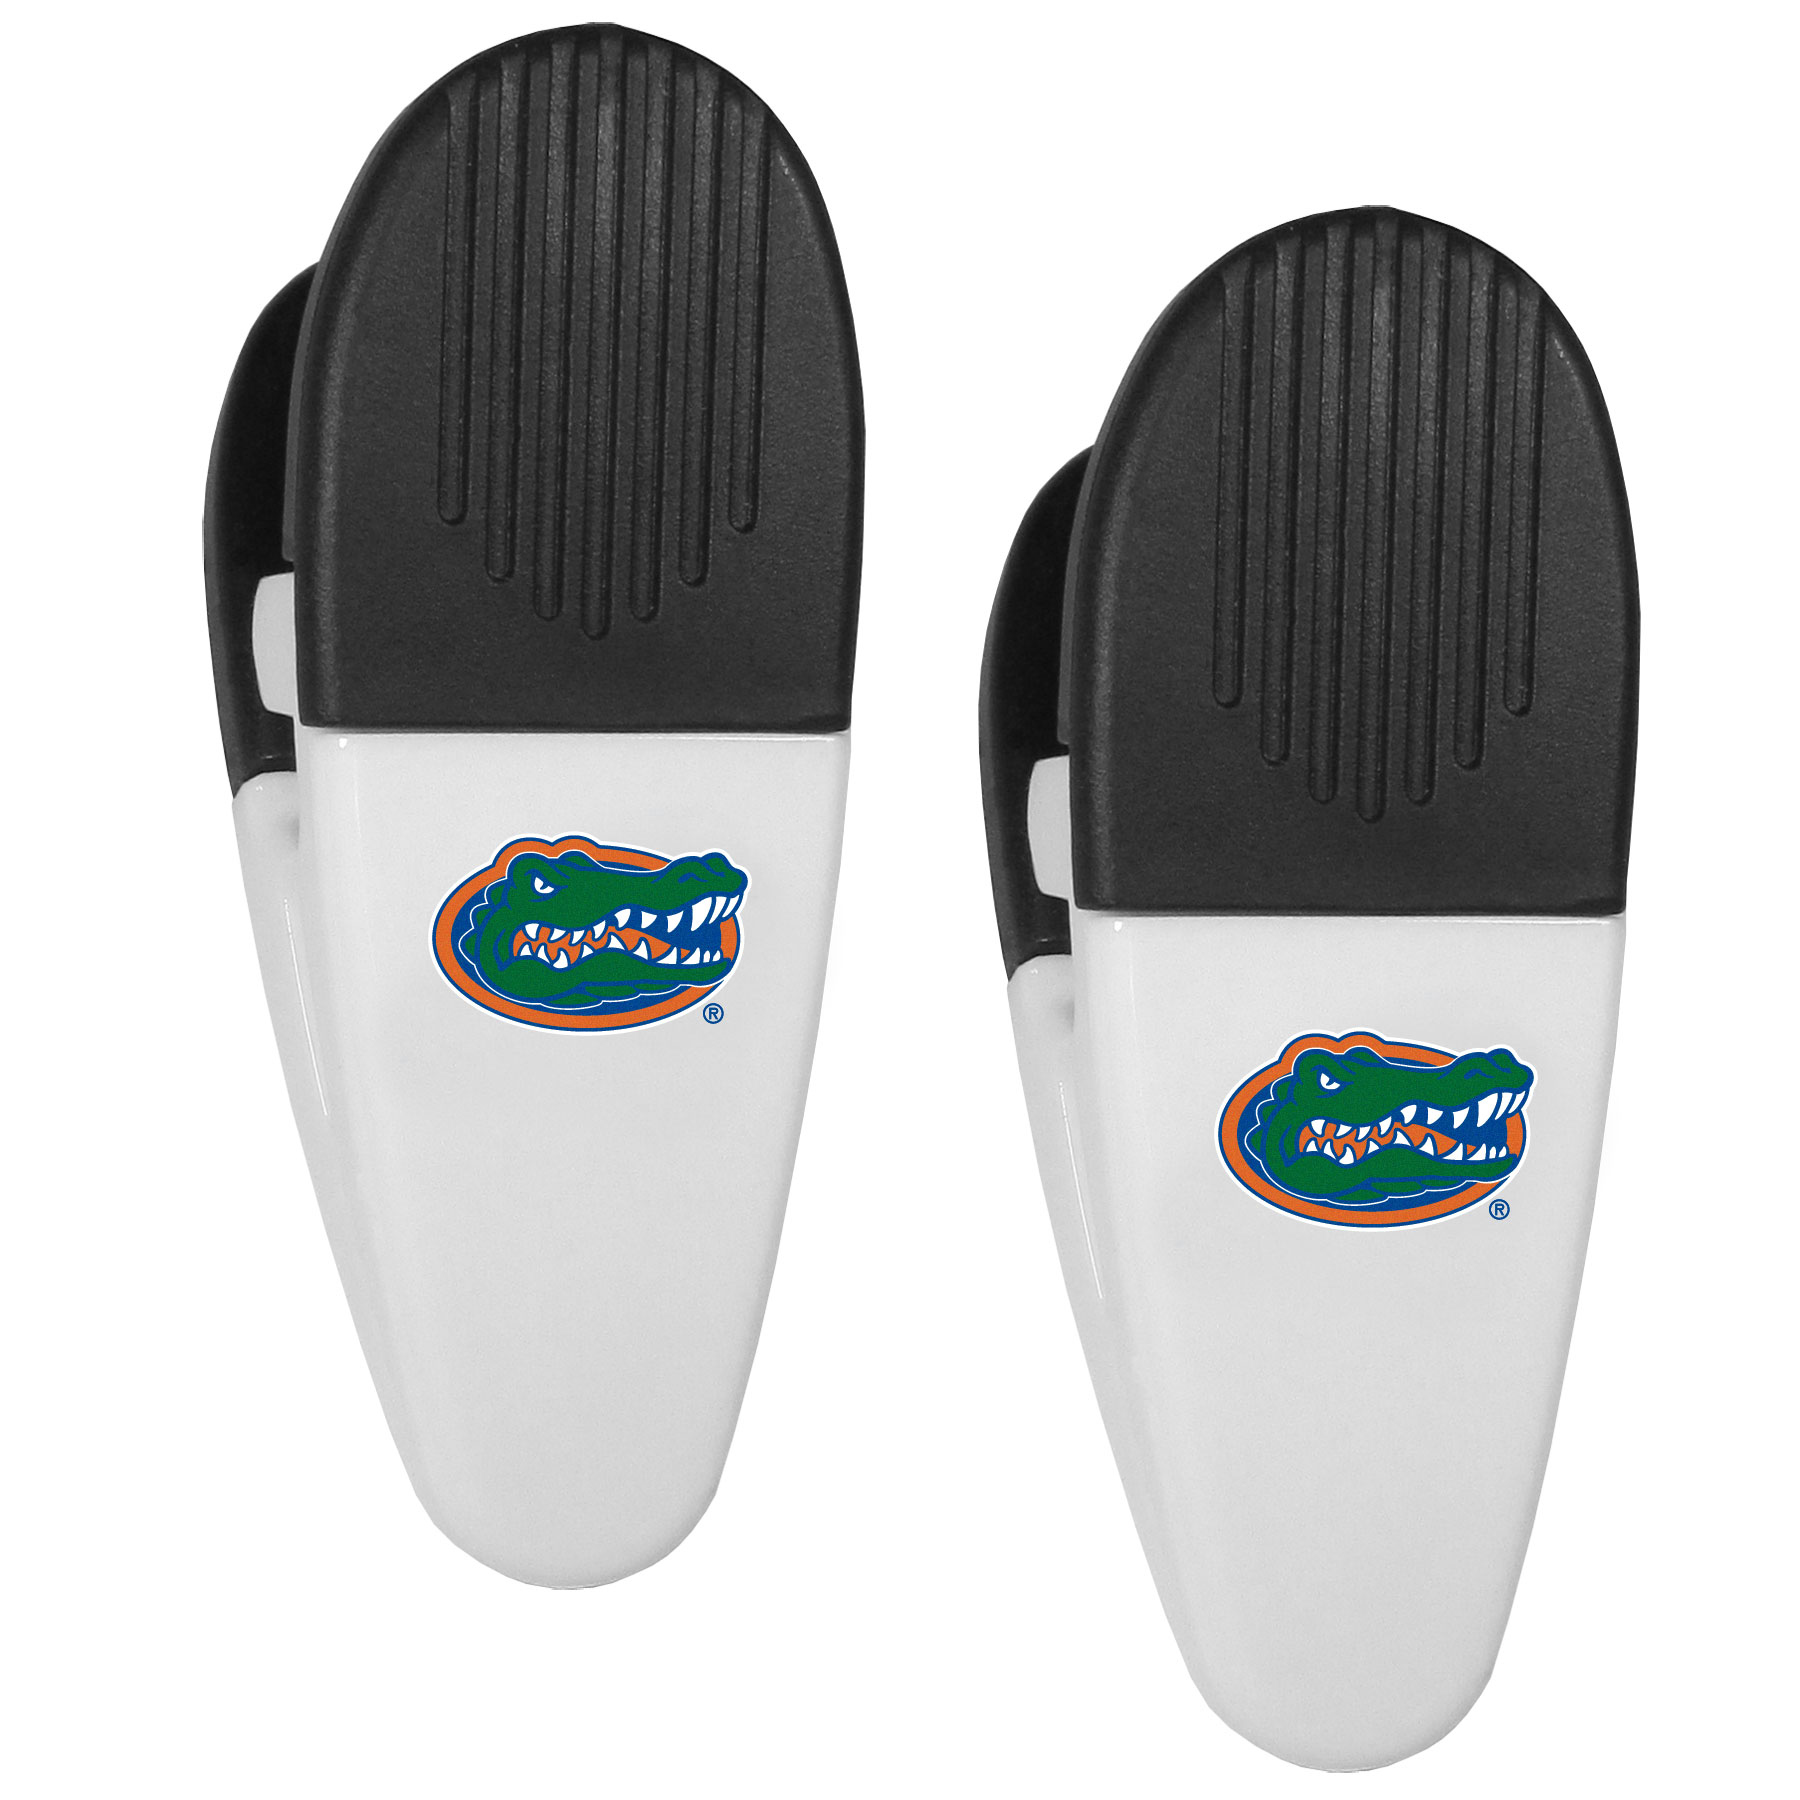 Florida Gators Mini Chip Clip Magnets, 2 pk